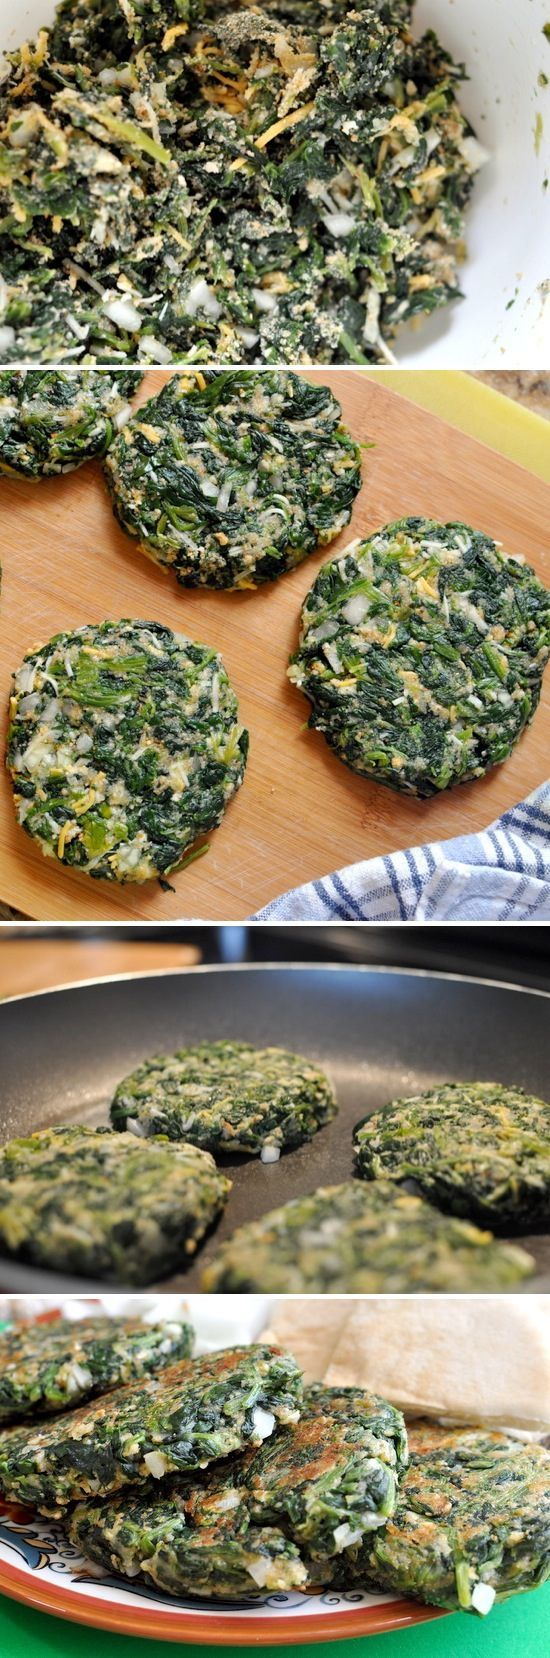 Spinach Burger Patties  Ingredients 1 bag of thawed and well drained chopped spinach 2 egg whites 1 whole egg ¼ c diced onion ½ c shredded cheese ½ c bread crumbs 1 tsp red pepper flakes 1 tsp salt ½ tsp garlic powder Instructions Mix all ingredients in a bowl. Shape into patties and cook over medium high heat in a non stick skillet with a small amount of cooking spray. Patties are done when they are golden and firm. (About 4-6 minutes )